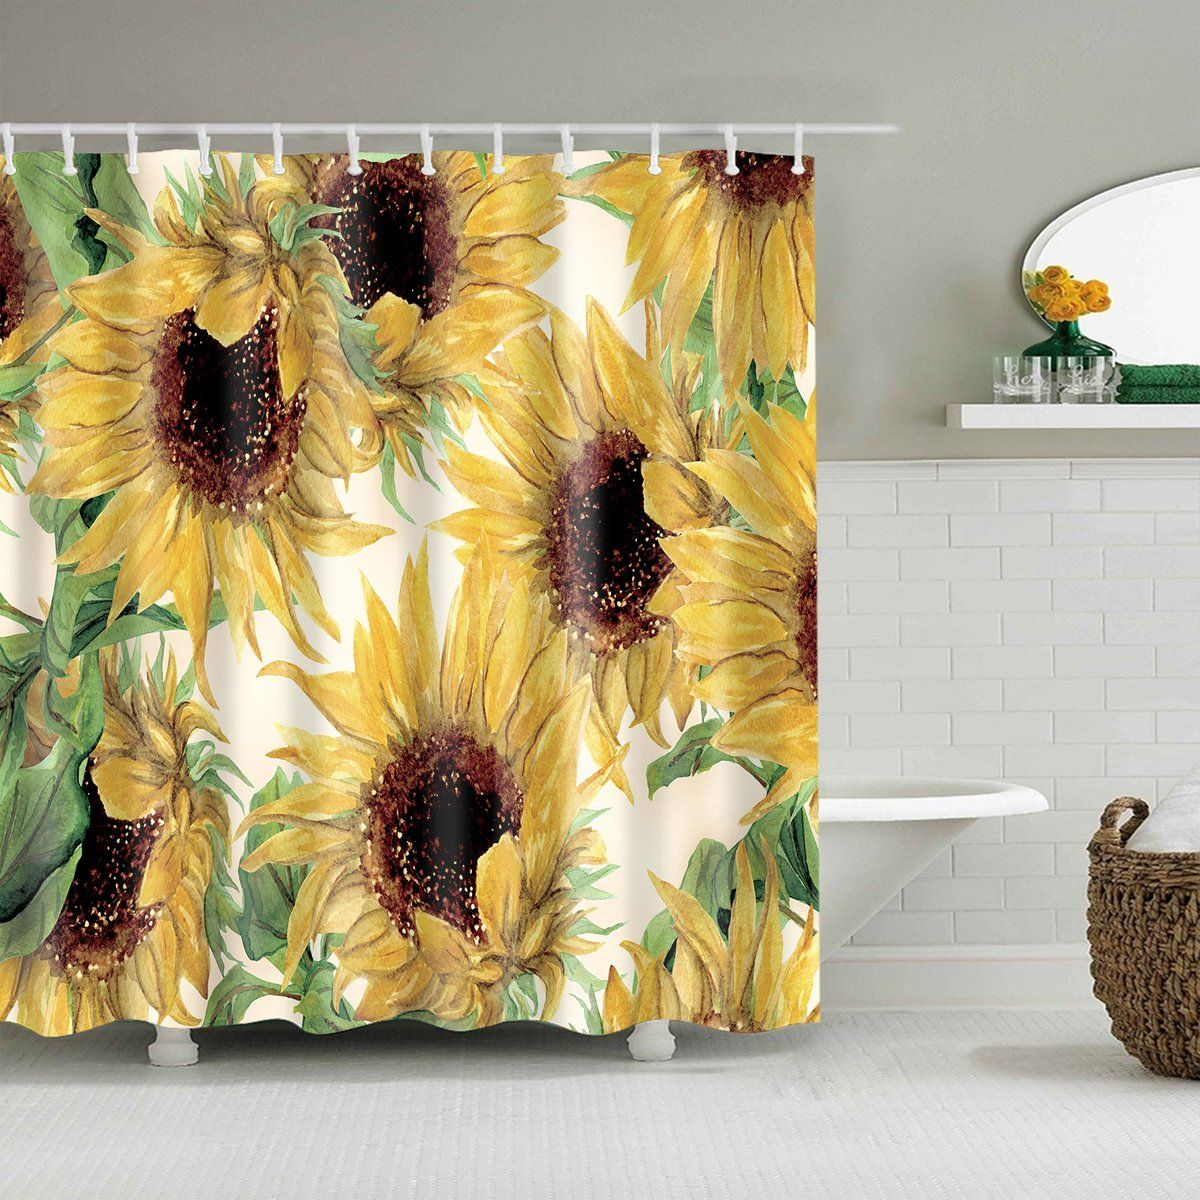 Daisies and Wooden Board Shower Curtain Complete Bathroom Set Waterproof